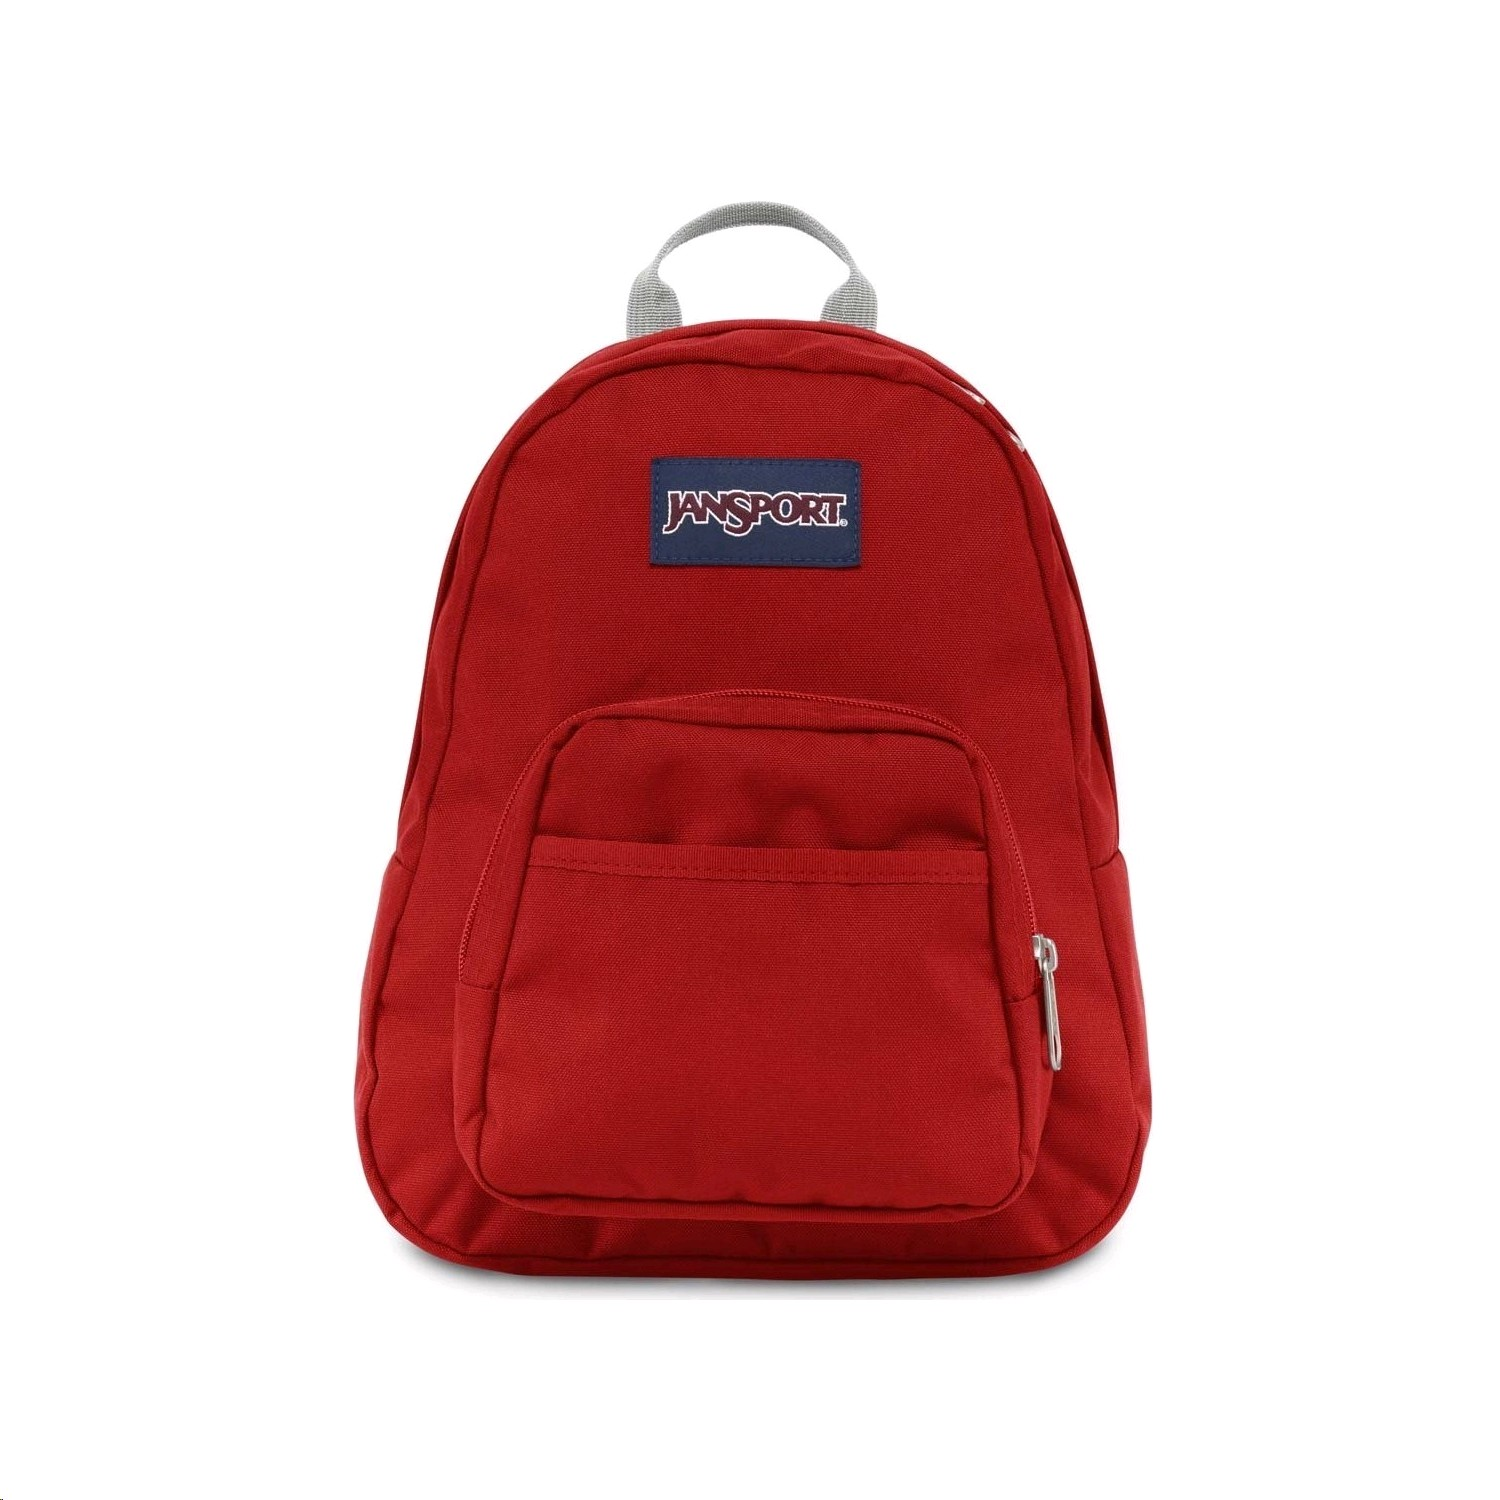 jansport-half-pint-red-tape-js00tdh65xp